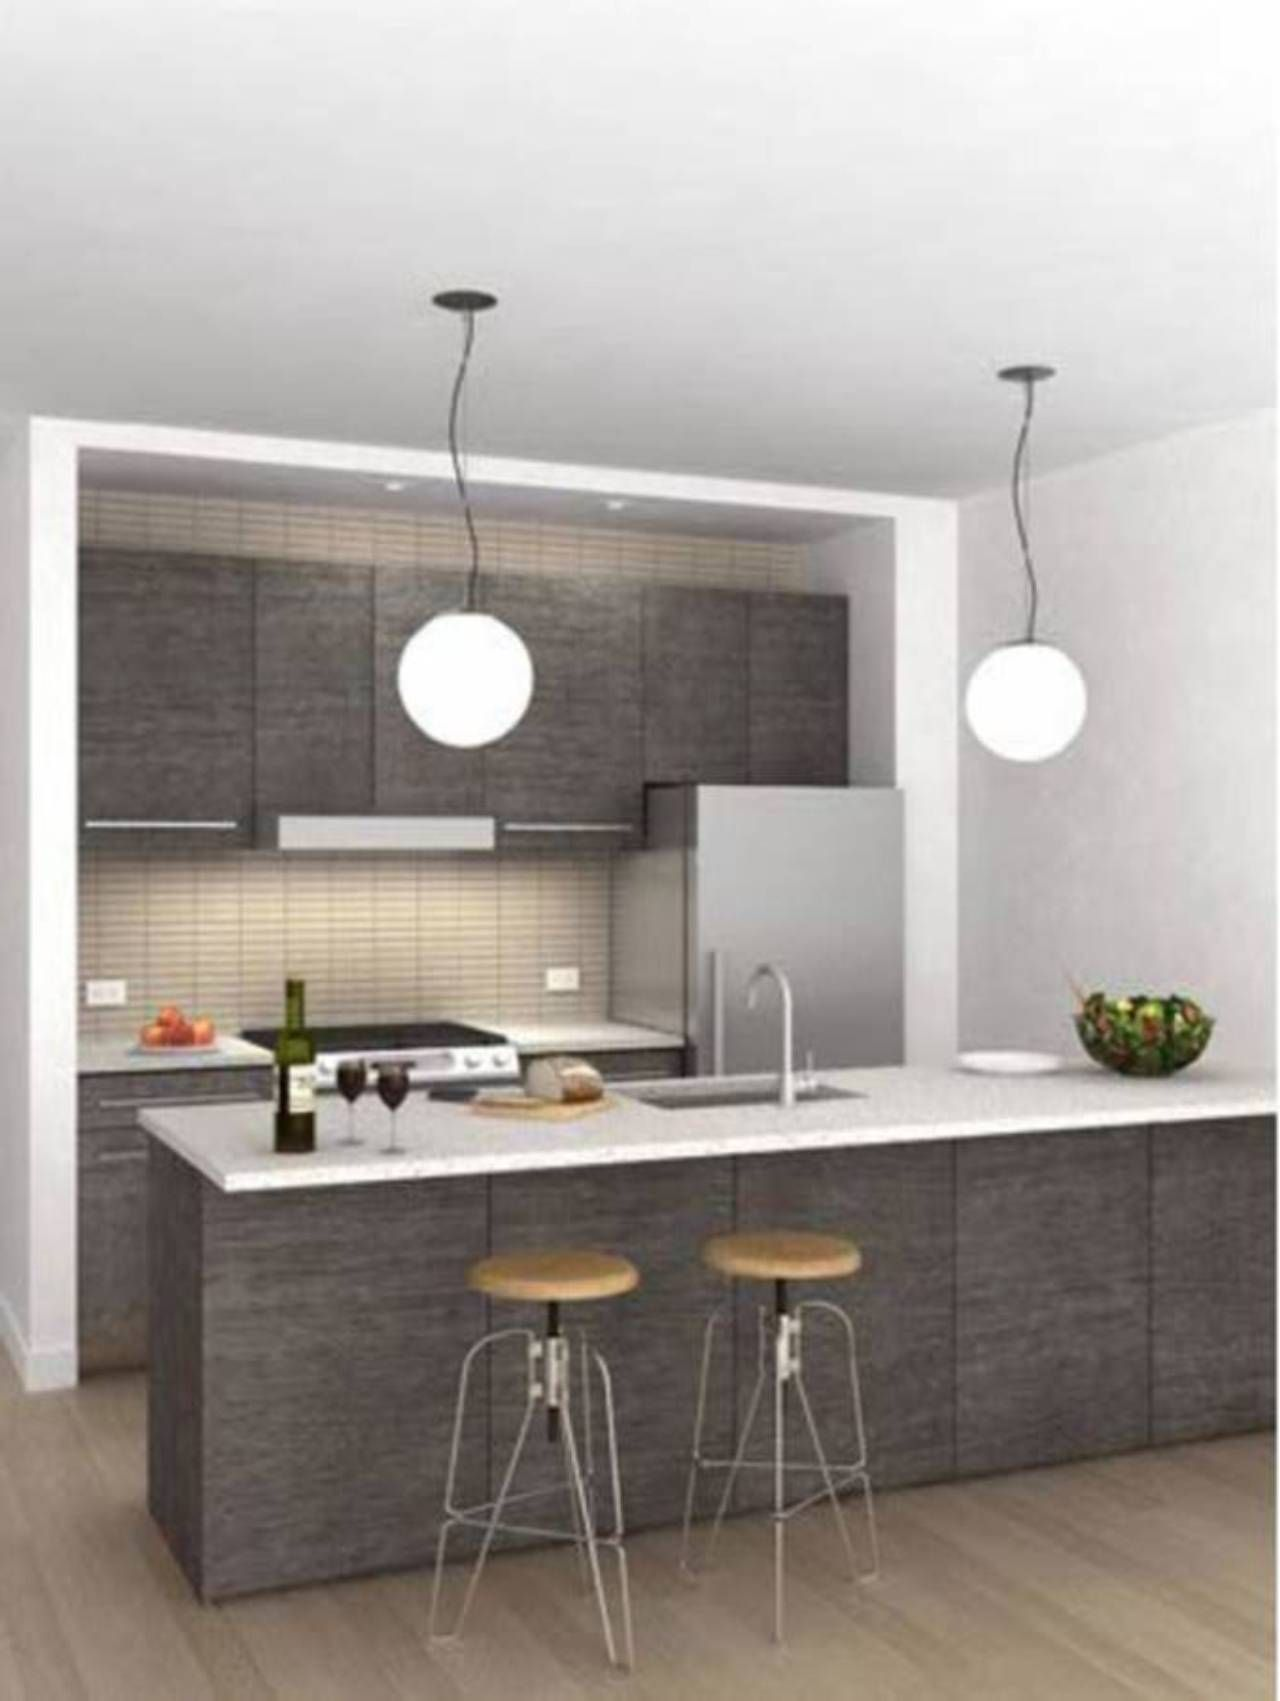 kitchensmall white modern kitchen. kitchensmall white modern kitchen l